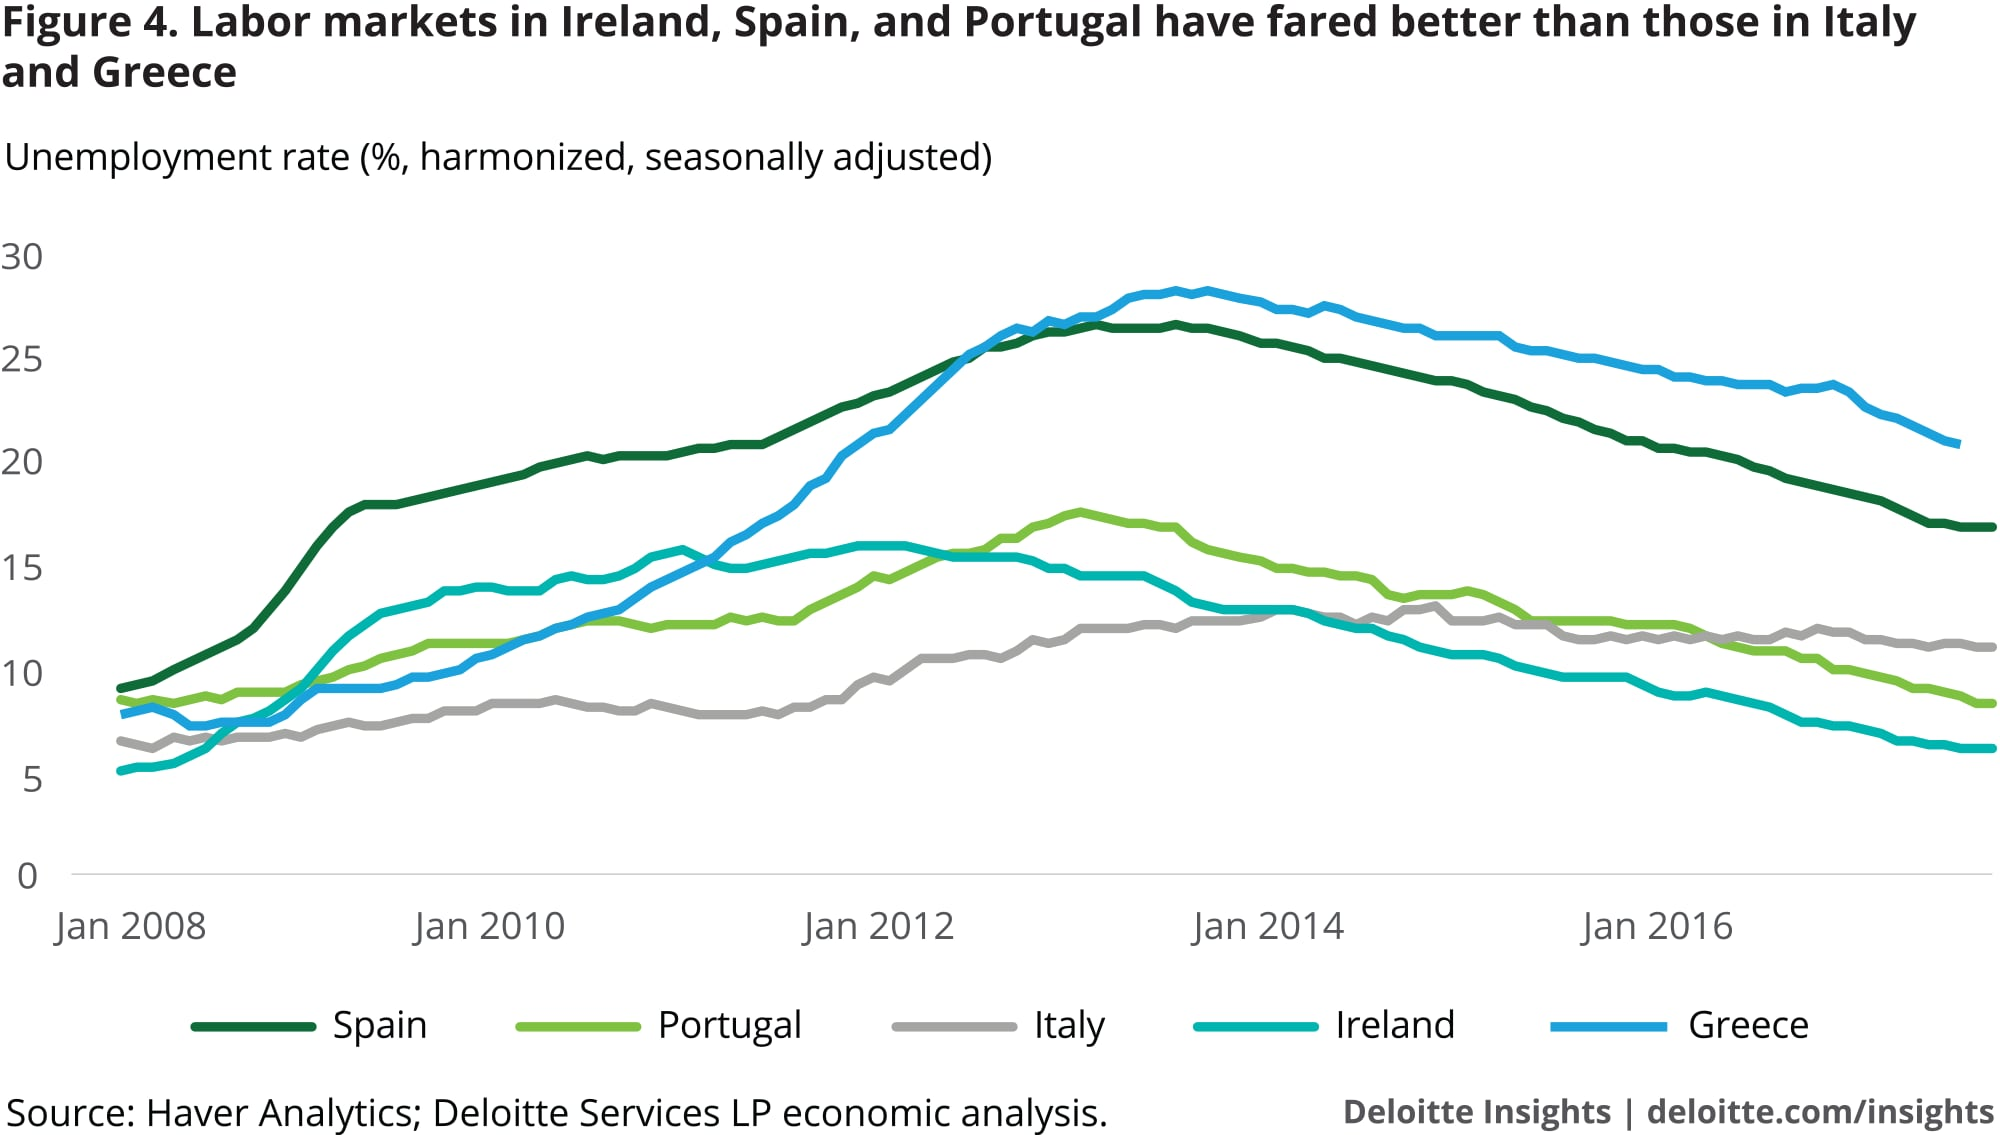 Labor markets in Ireland, Spain, and Portugal have fared better than those in Italy and Greece